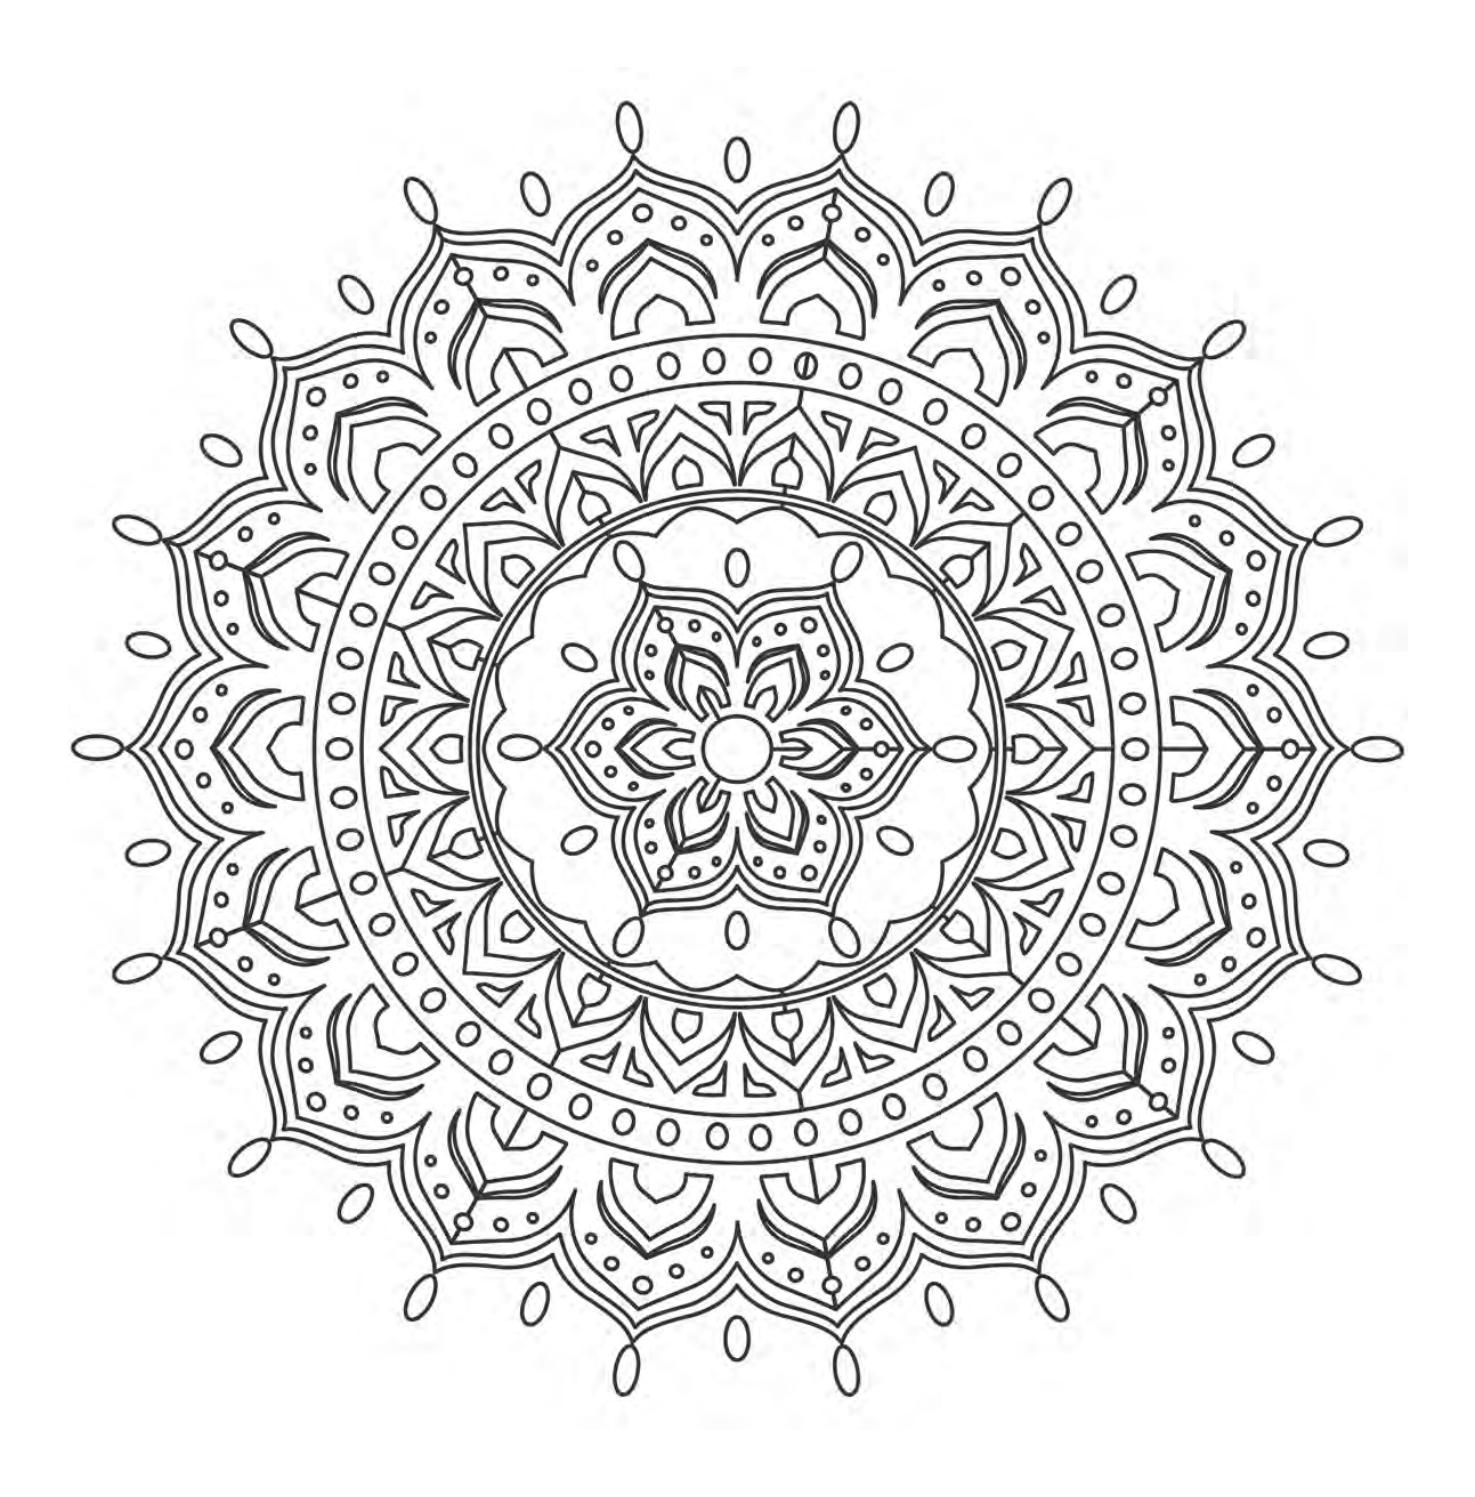 101 Mandalas The Big Coloring Book Mandala Coloring Pages Coloring Book Art Coloring Books